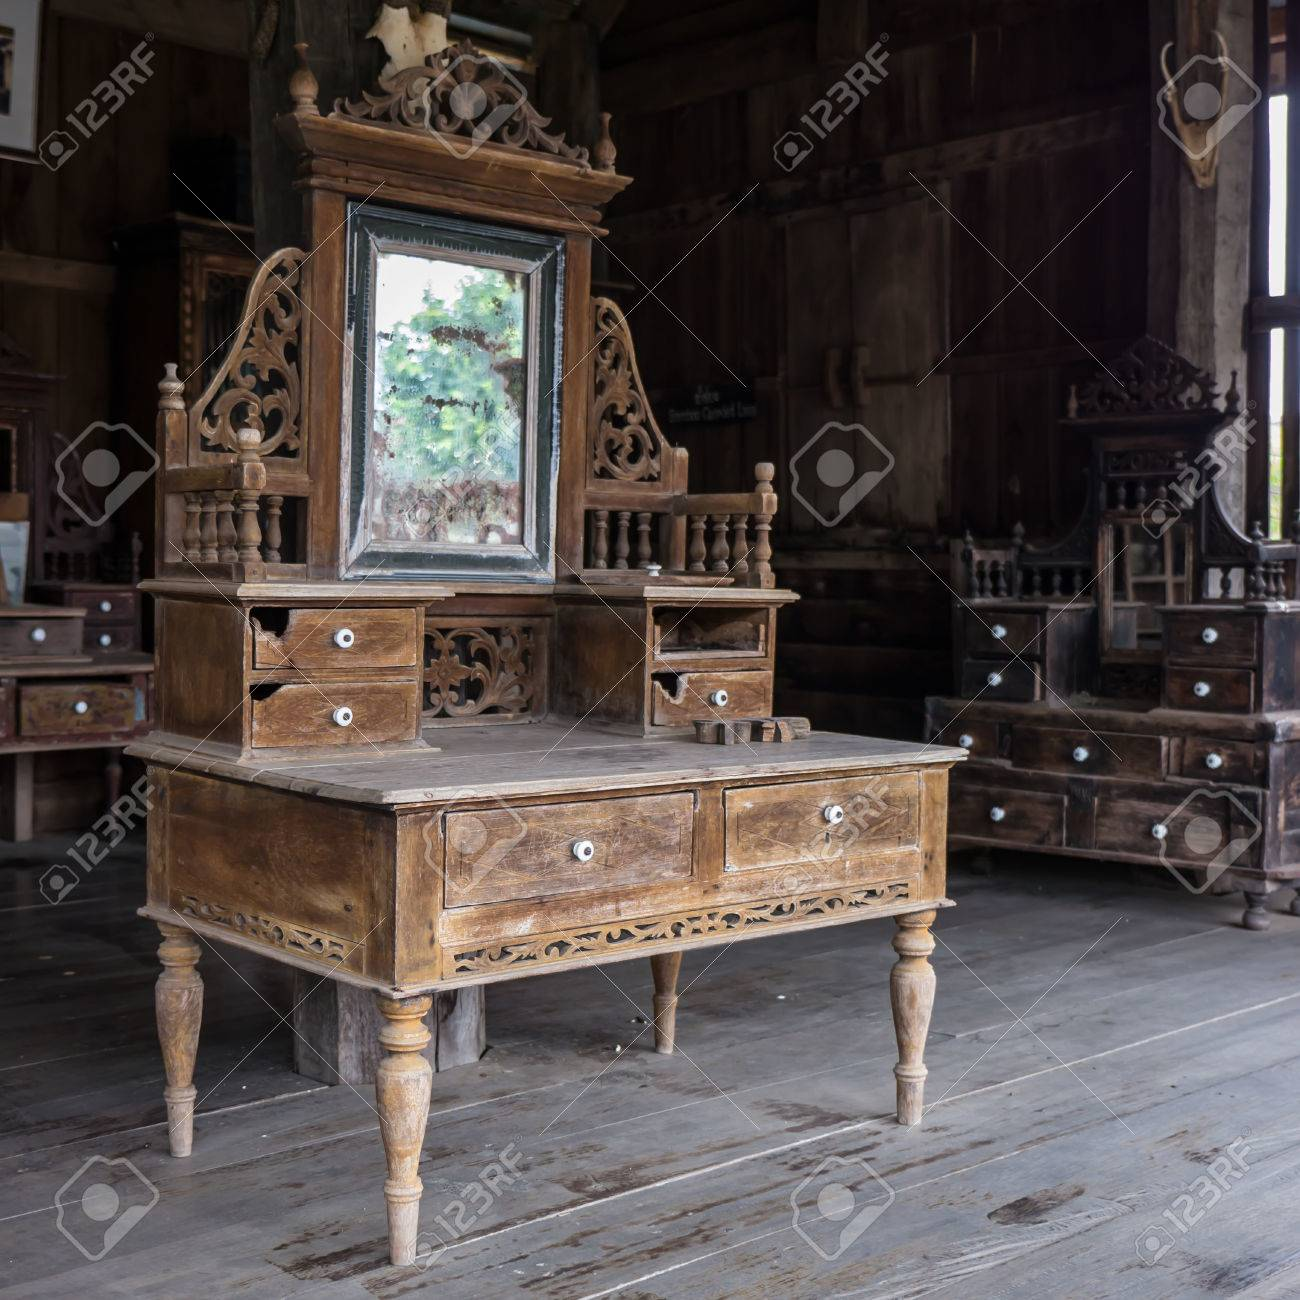 Stock Photo - Vintage dressing table, old-fashioned wooden vanity in old  house - Vintage Dressing Table, Old-fashioned Wooden Vanity In Old House